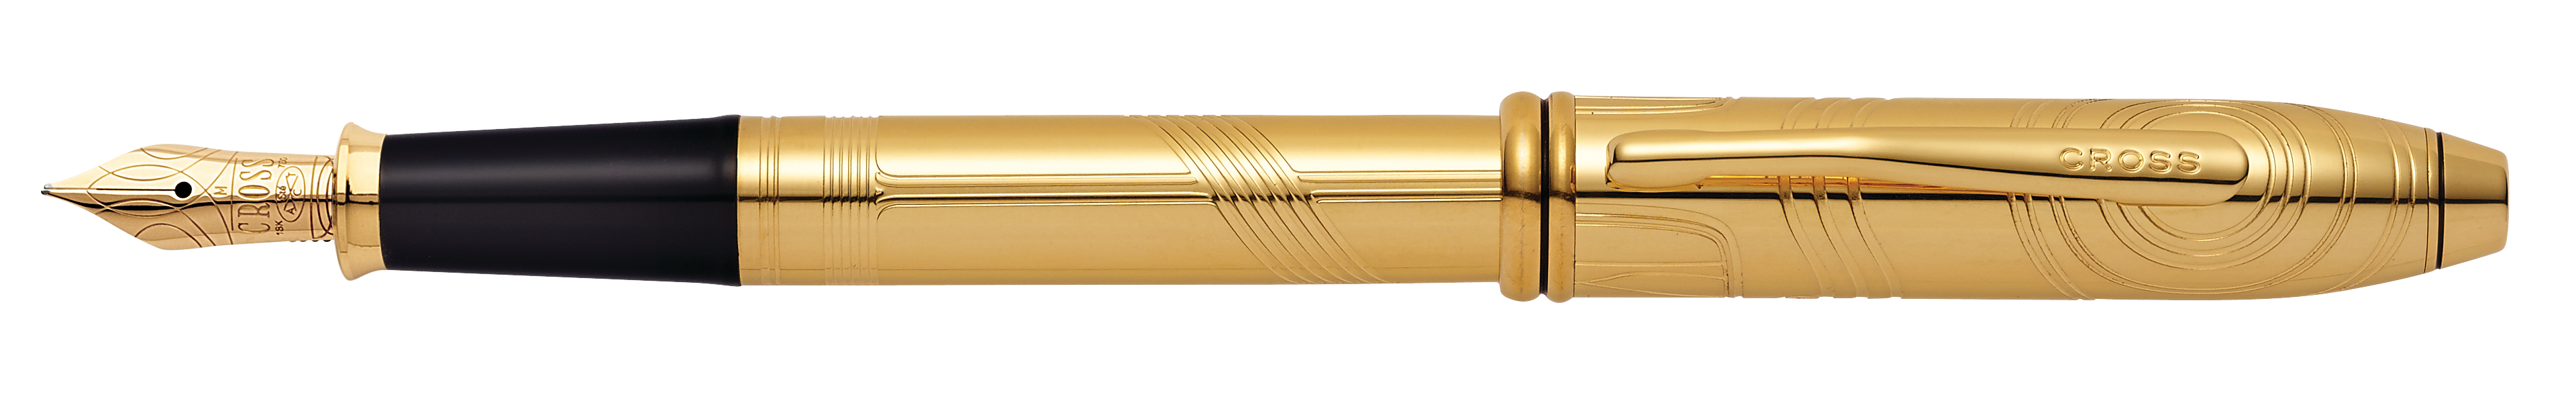 Cross Townsend Star Wars C-3PO Limited Edition Fountain Pen